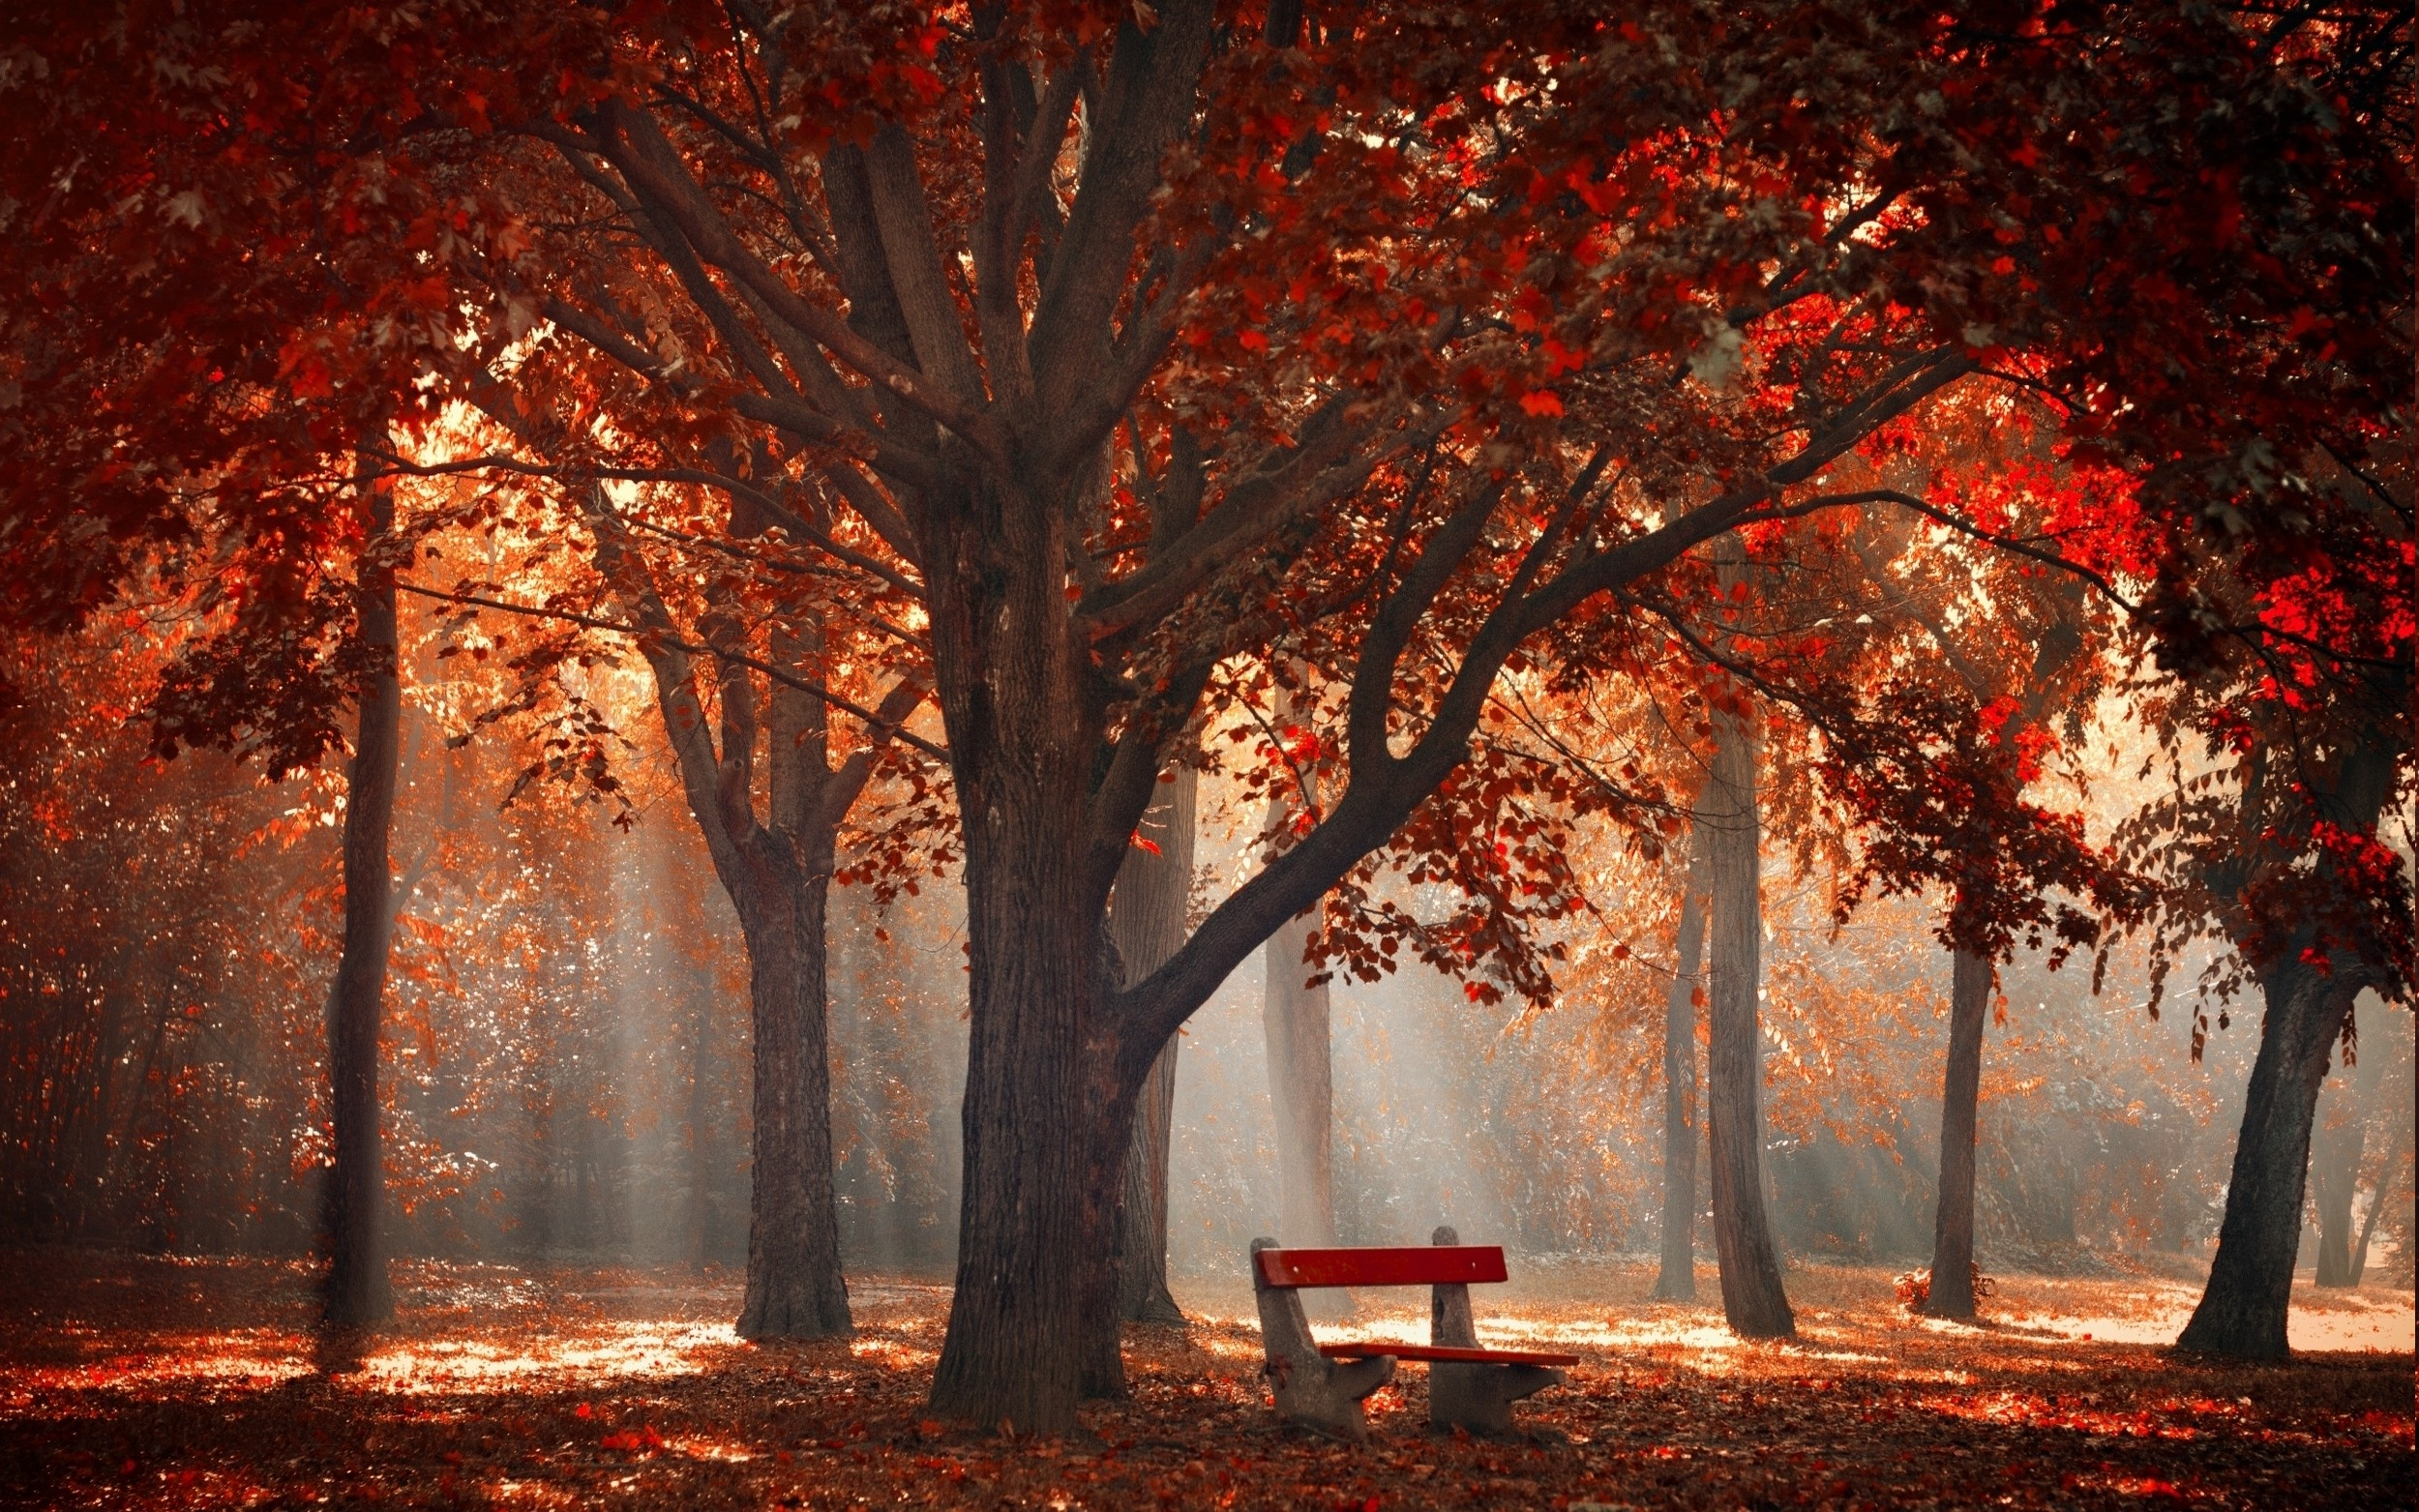 Desktop Wallpaper Fall Leaves Nature Landscape Park Trees Fall Mist Leaves Bench